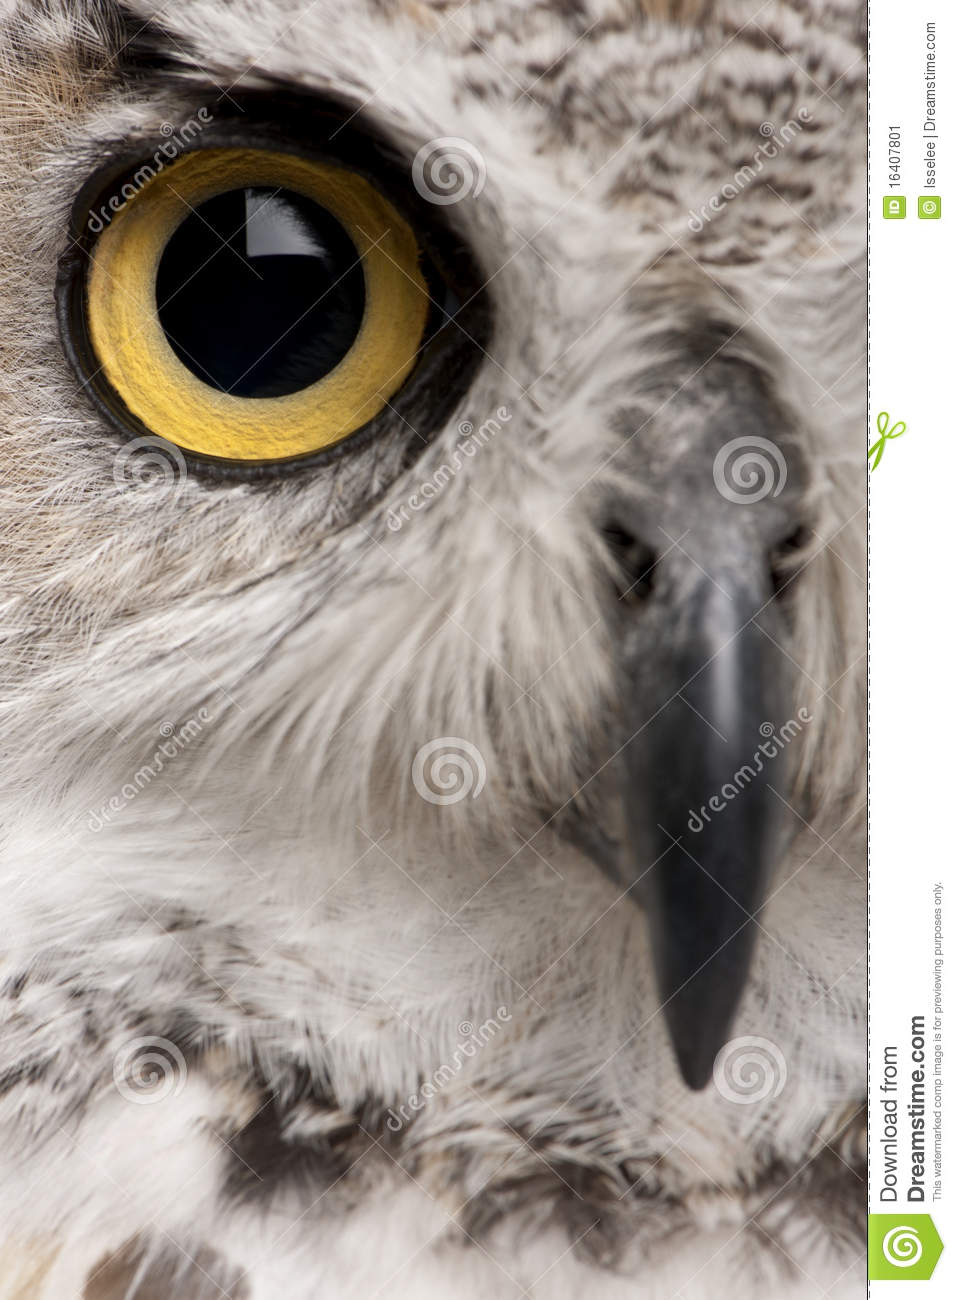 Close-up of Great Horned Owl